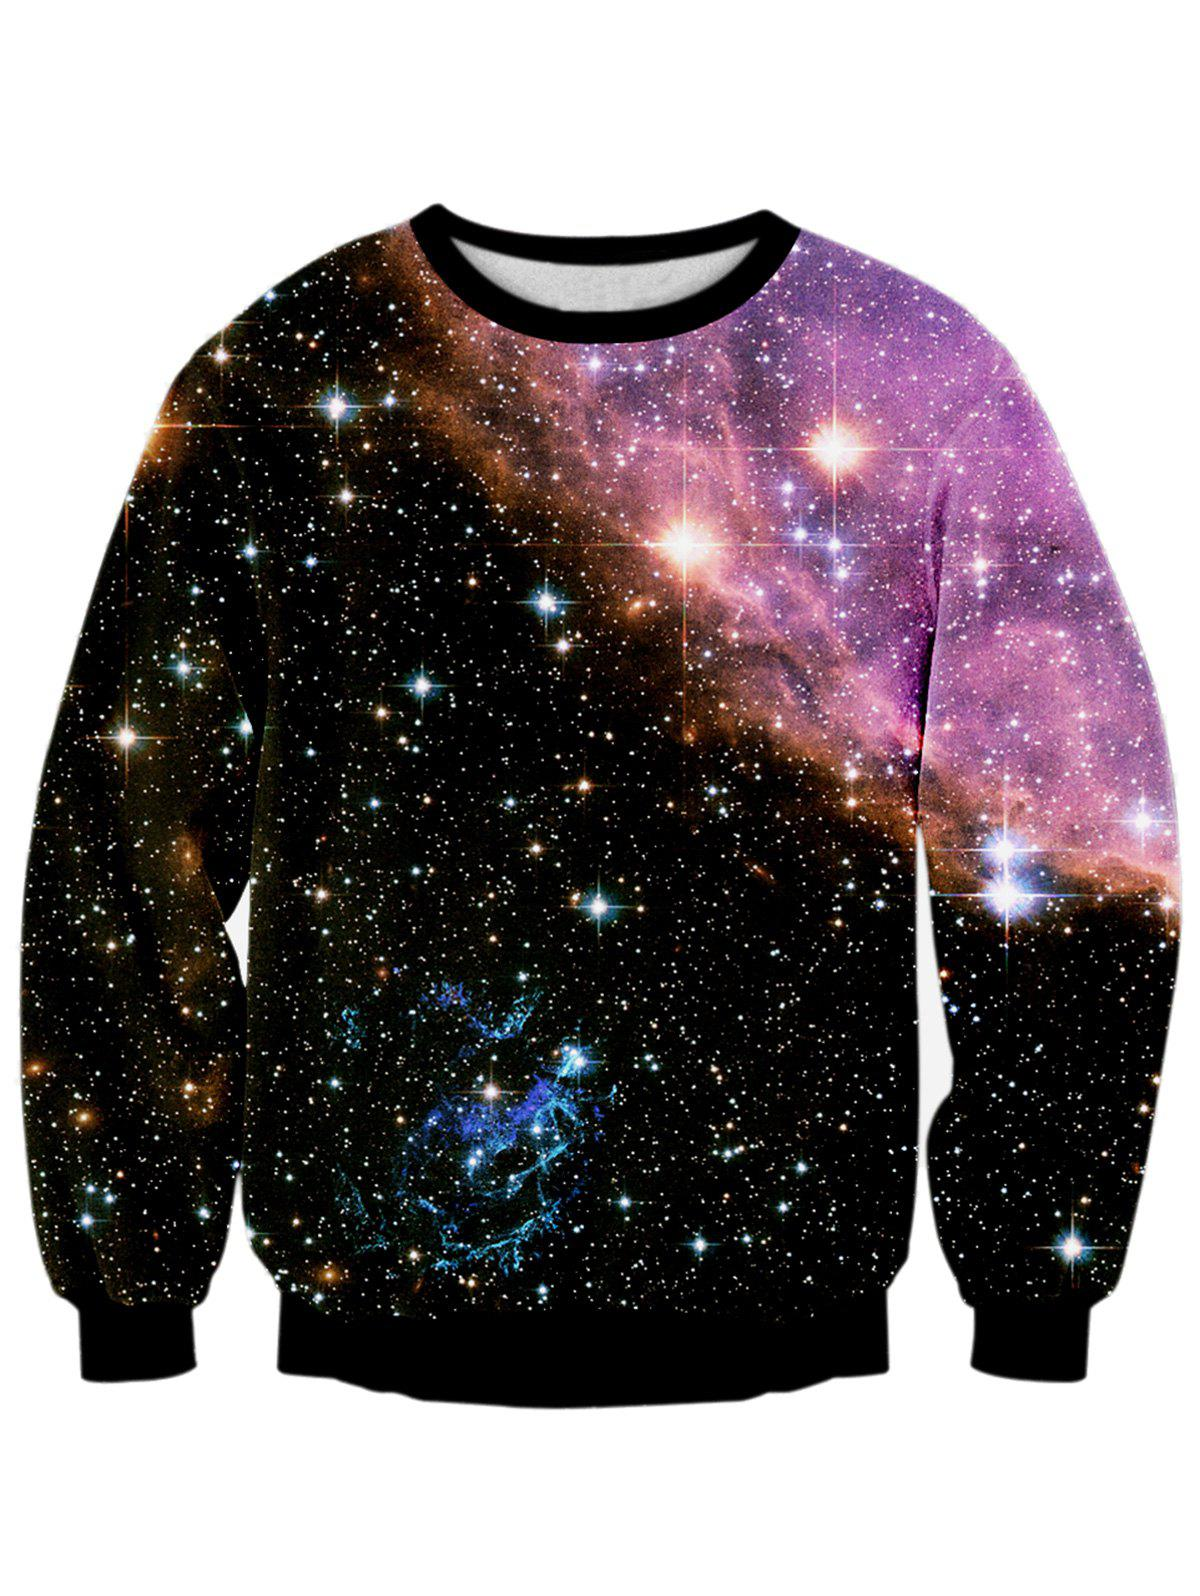 Starry Sky 3D Print Galaxy Sweatshirt sweatshirt with 3d galaxy print